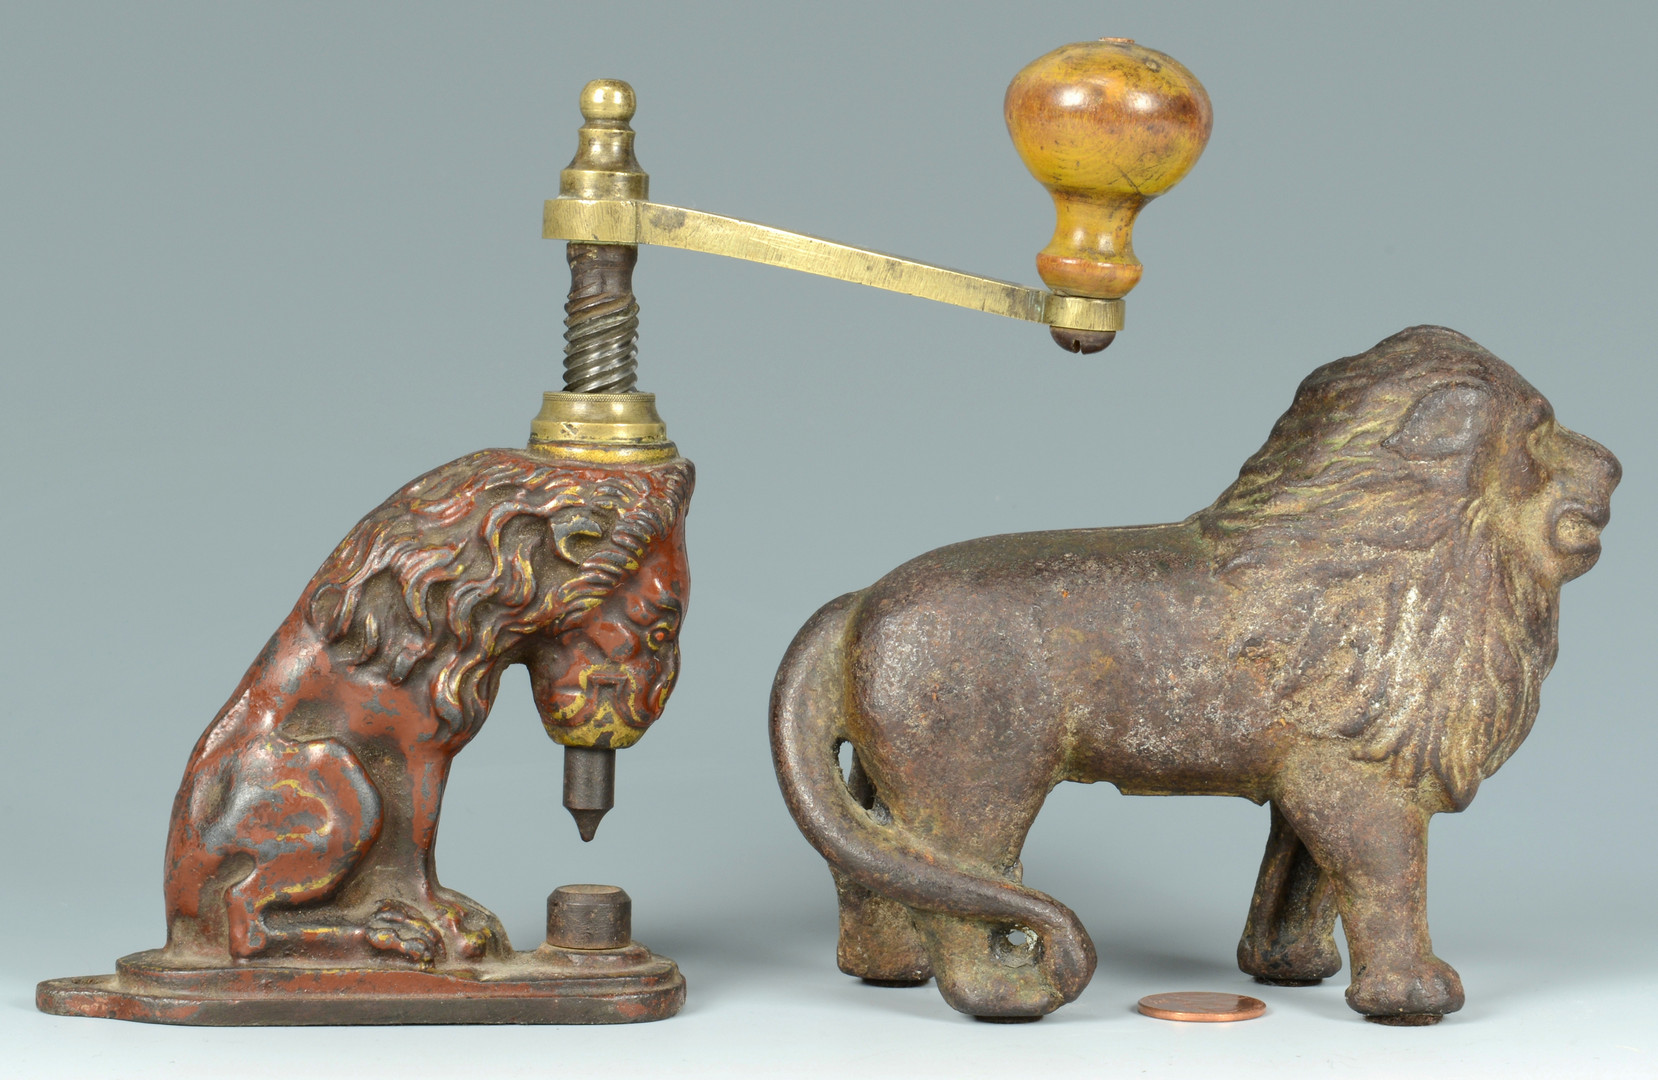 Lot 843: Cast Iron Lion Hole Punch and Bank